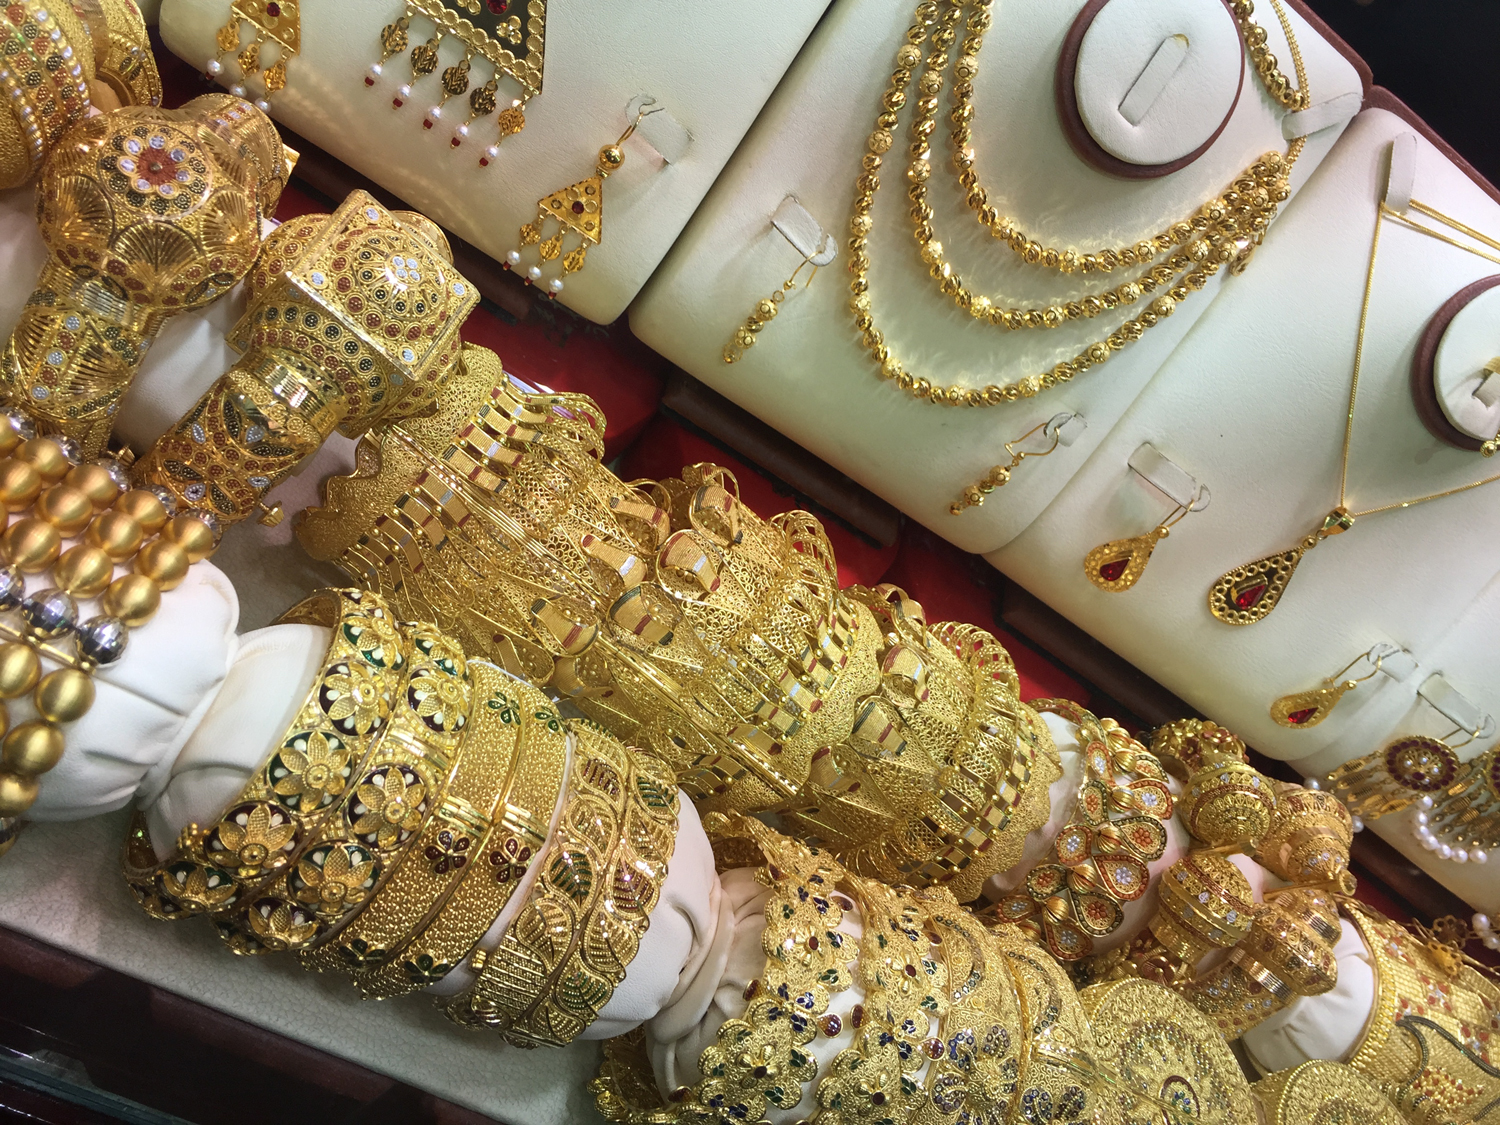 Bracelets gold souk dubai travel insider for Cheap romantic things to do in nyc